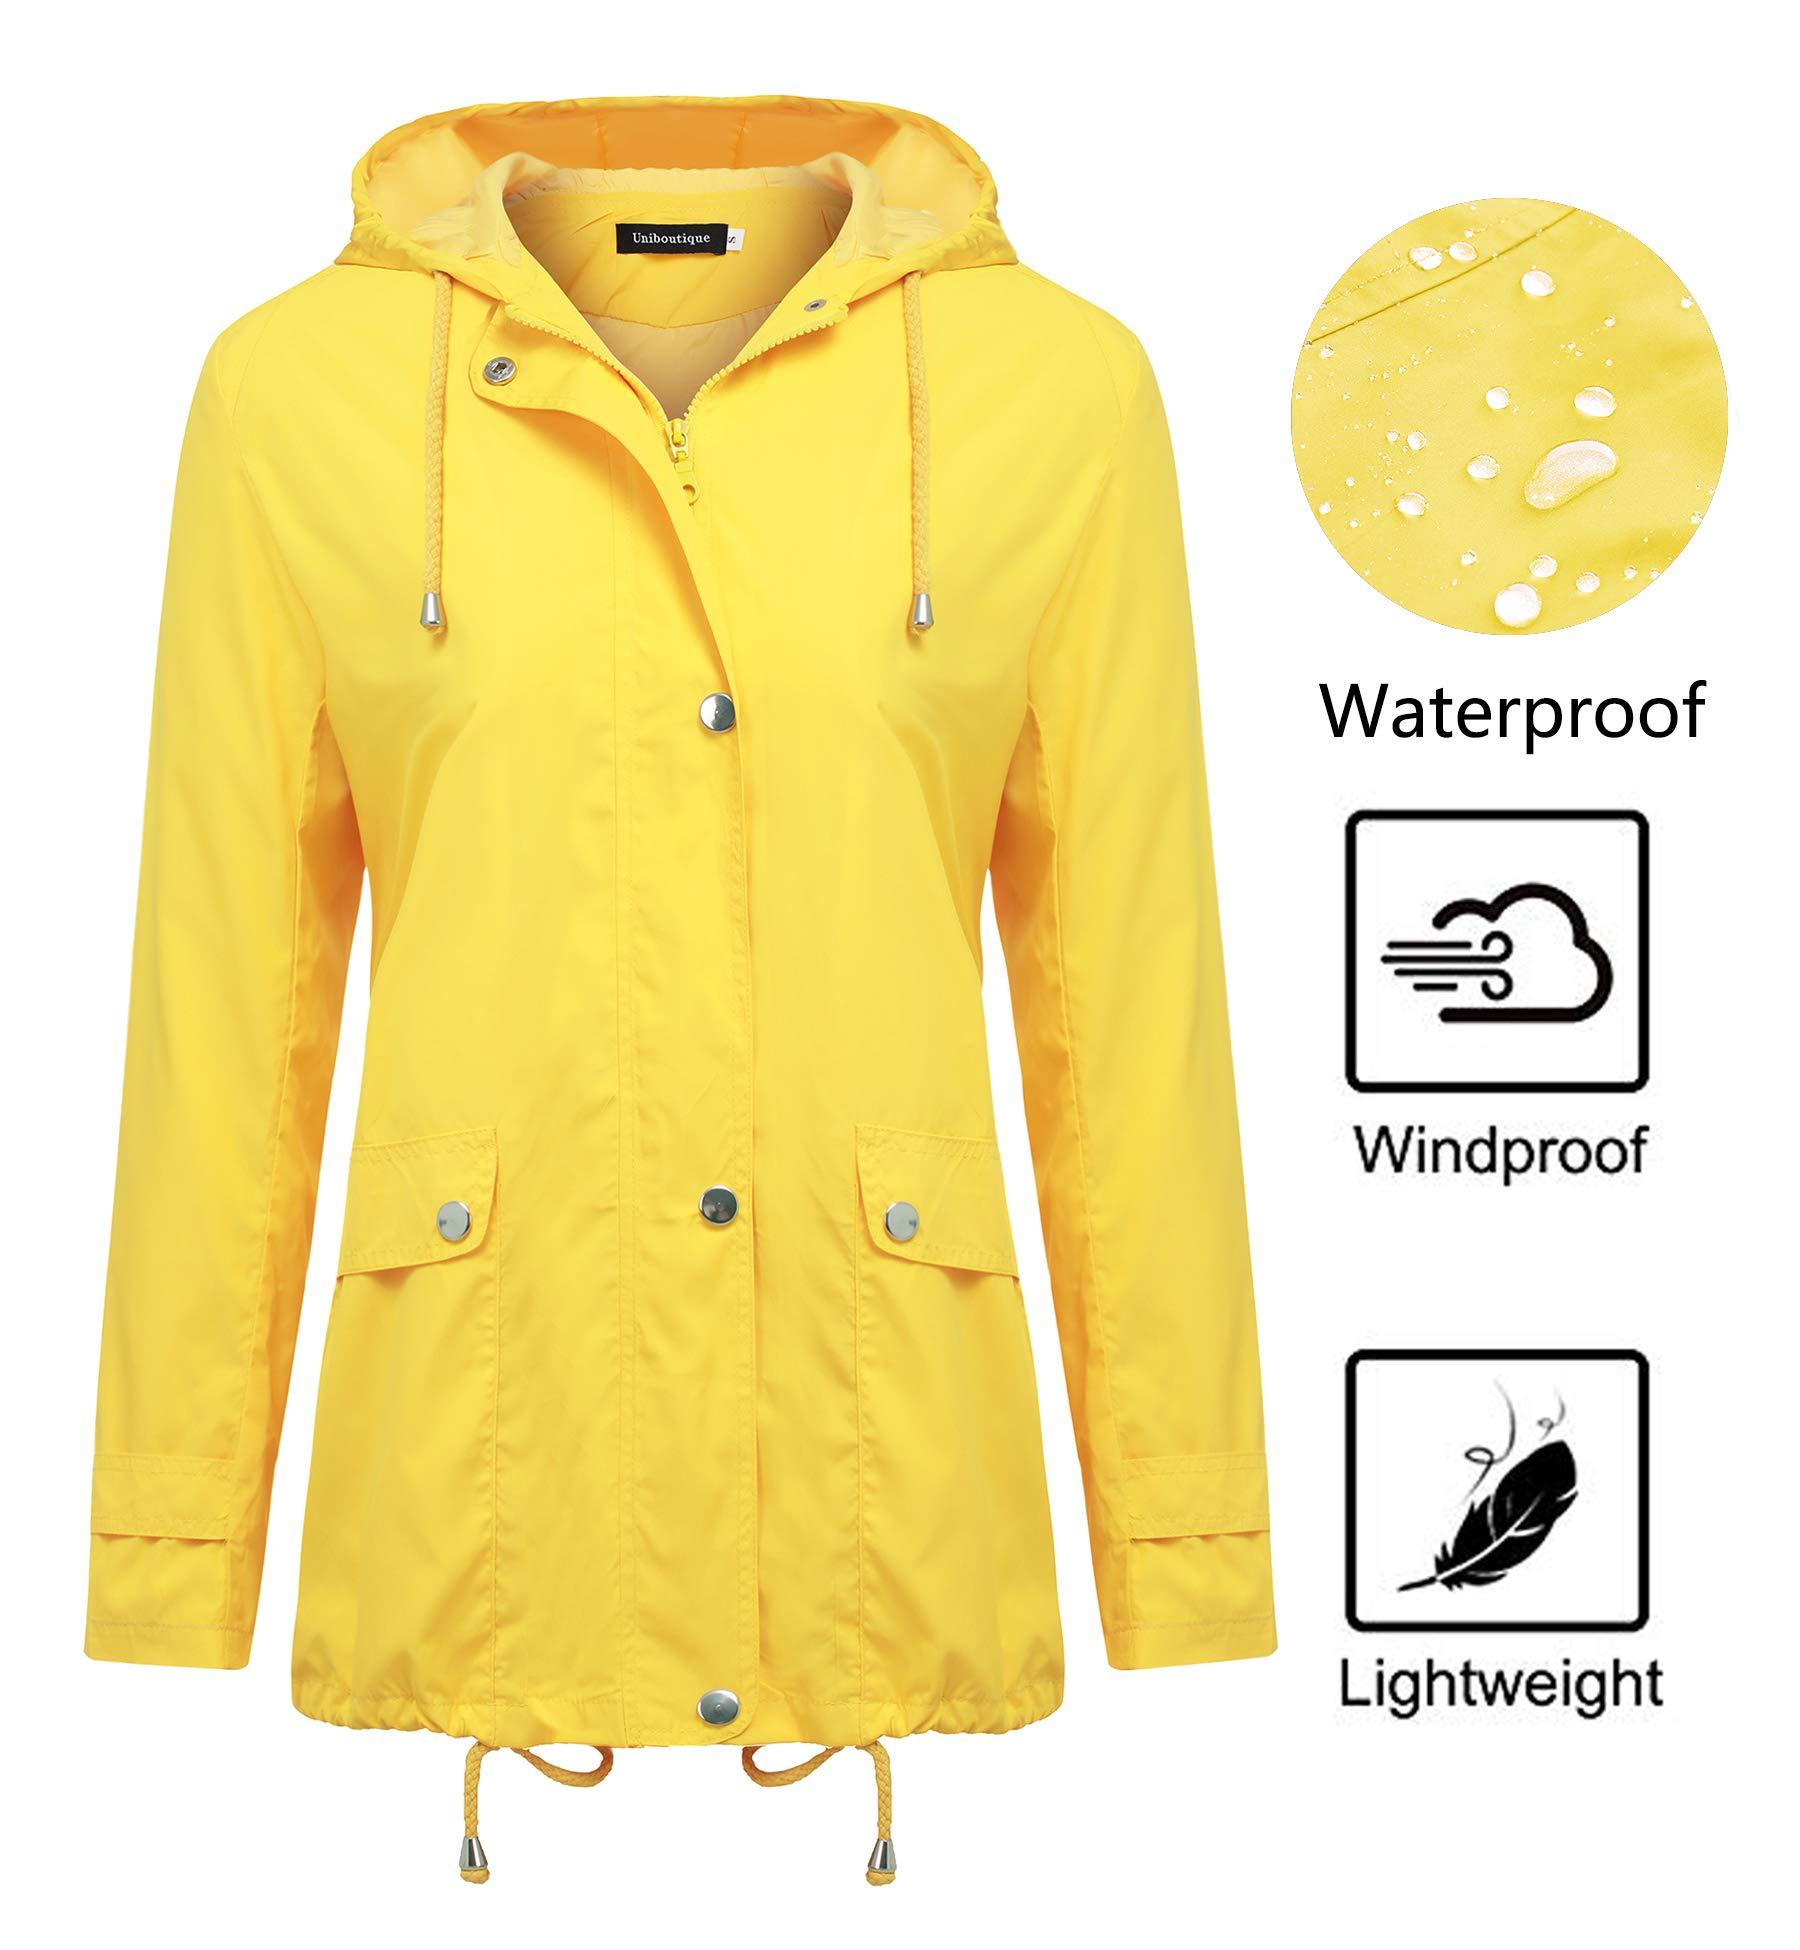 Uniboutique Rain Jackets Women Casual Raincoat Hooded Lightweight Outdoor  Windbreaker Waterproof Jacket product image 411ca7572